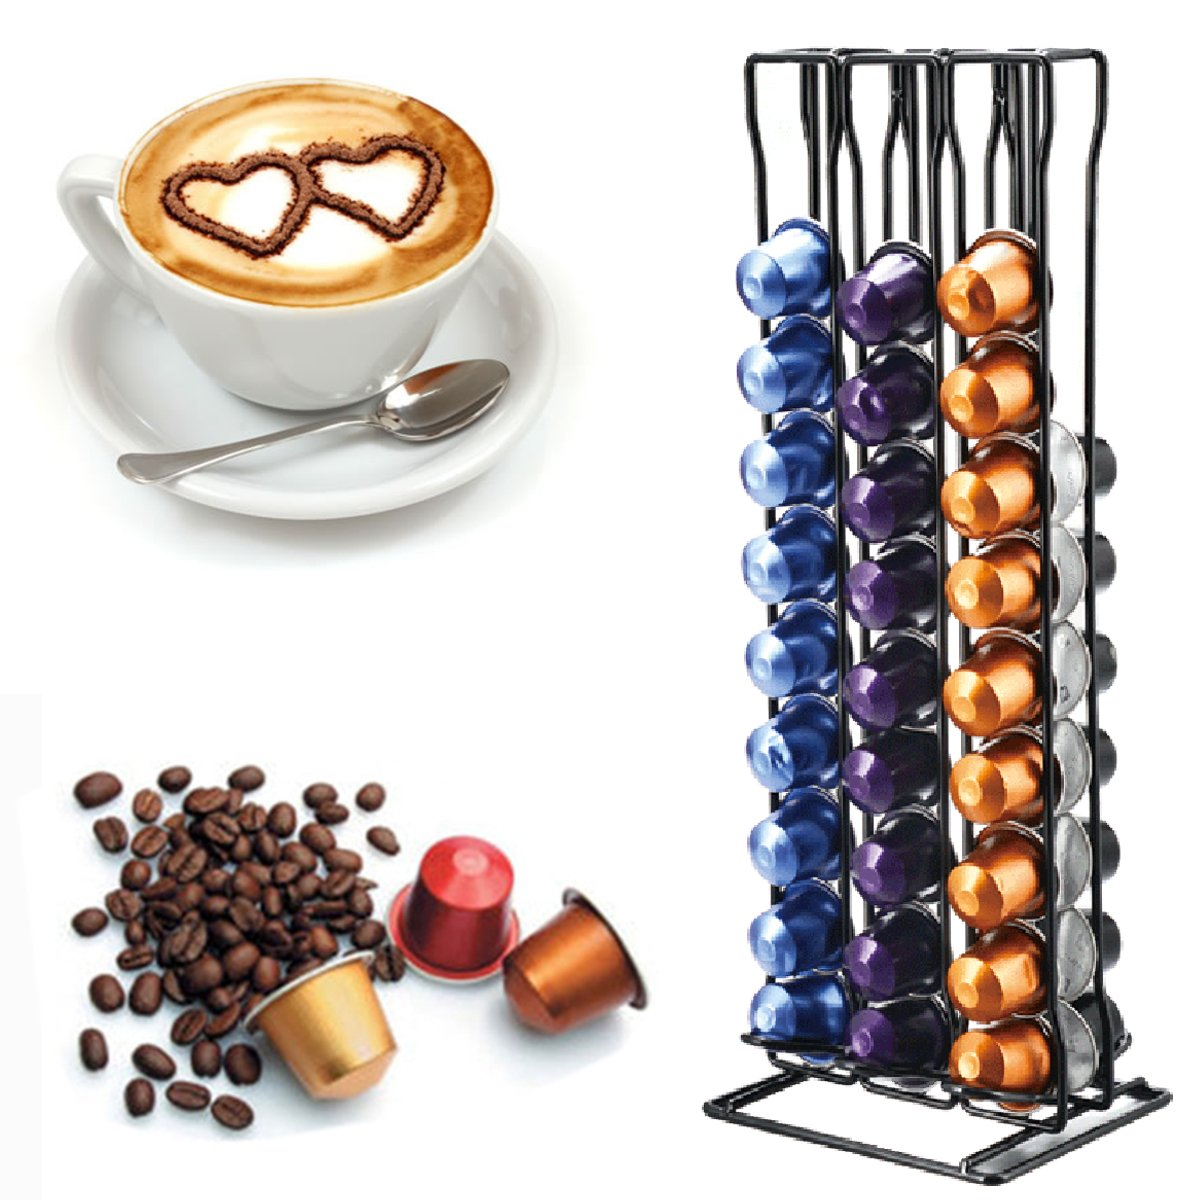 WCHAOEN 60pcs Coffee Capsule Cup Holder Storage Stand Chrome Tower Mount Rack Accessories Tool